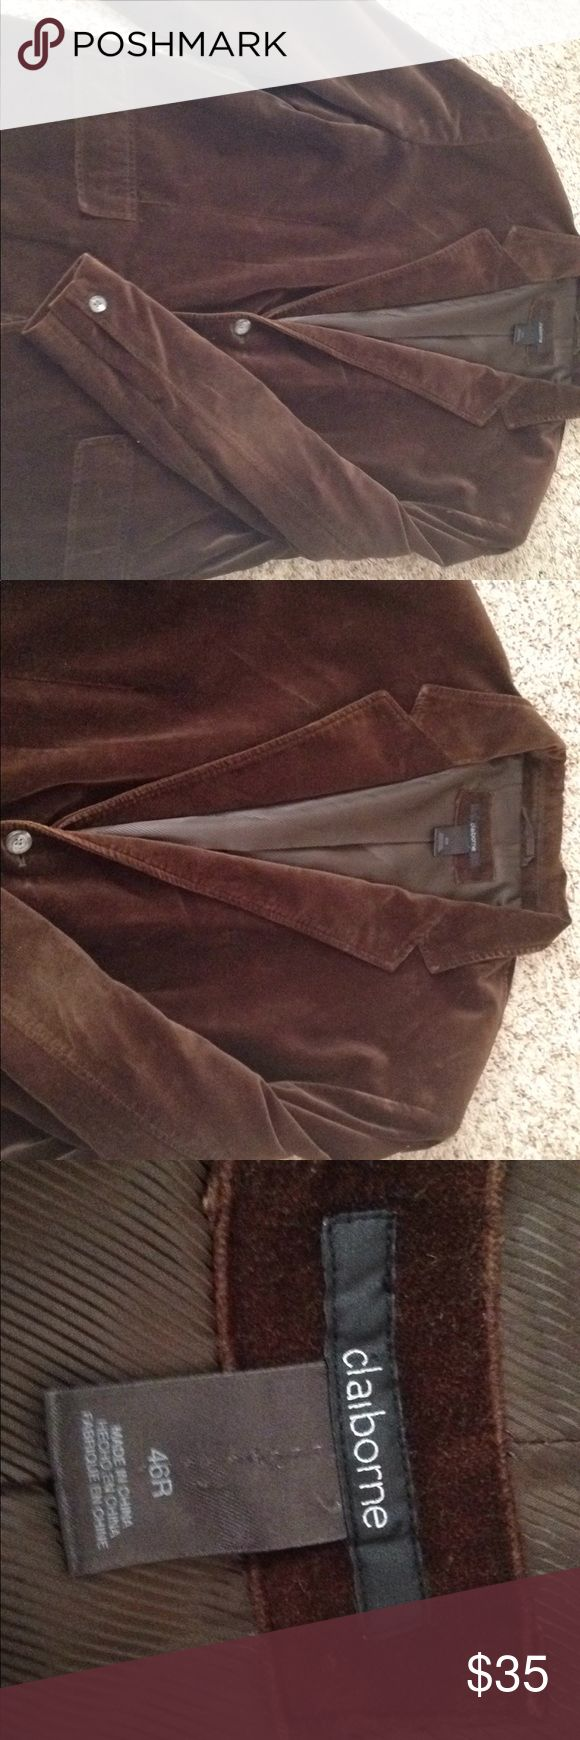 Claiborne Men sport jacket Brown velvet sport jacket. Pictures of small worn spots on collar and bottom of jacket, barely noticeable Claiborne Jackets & Coats Blazers